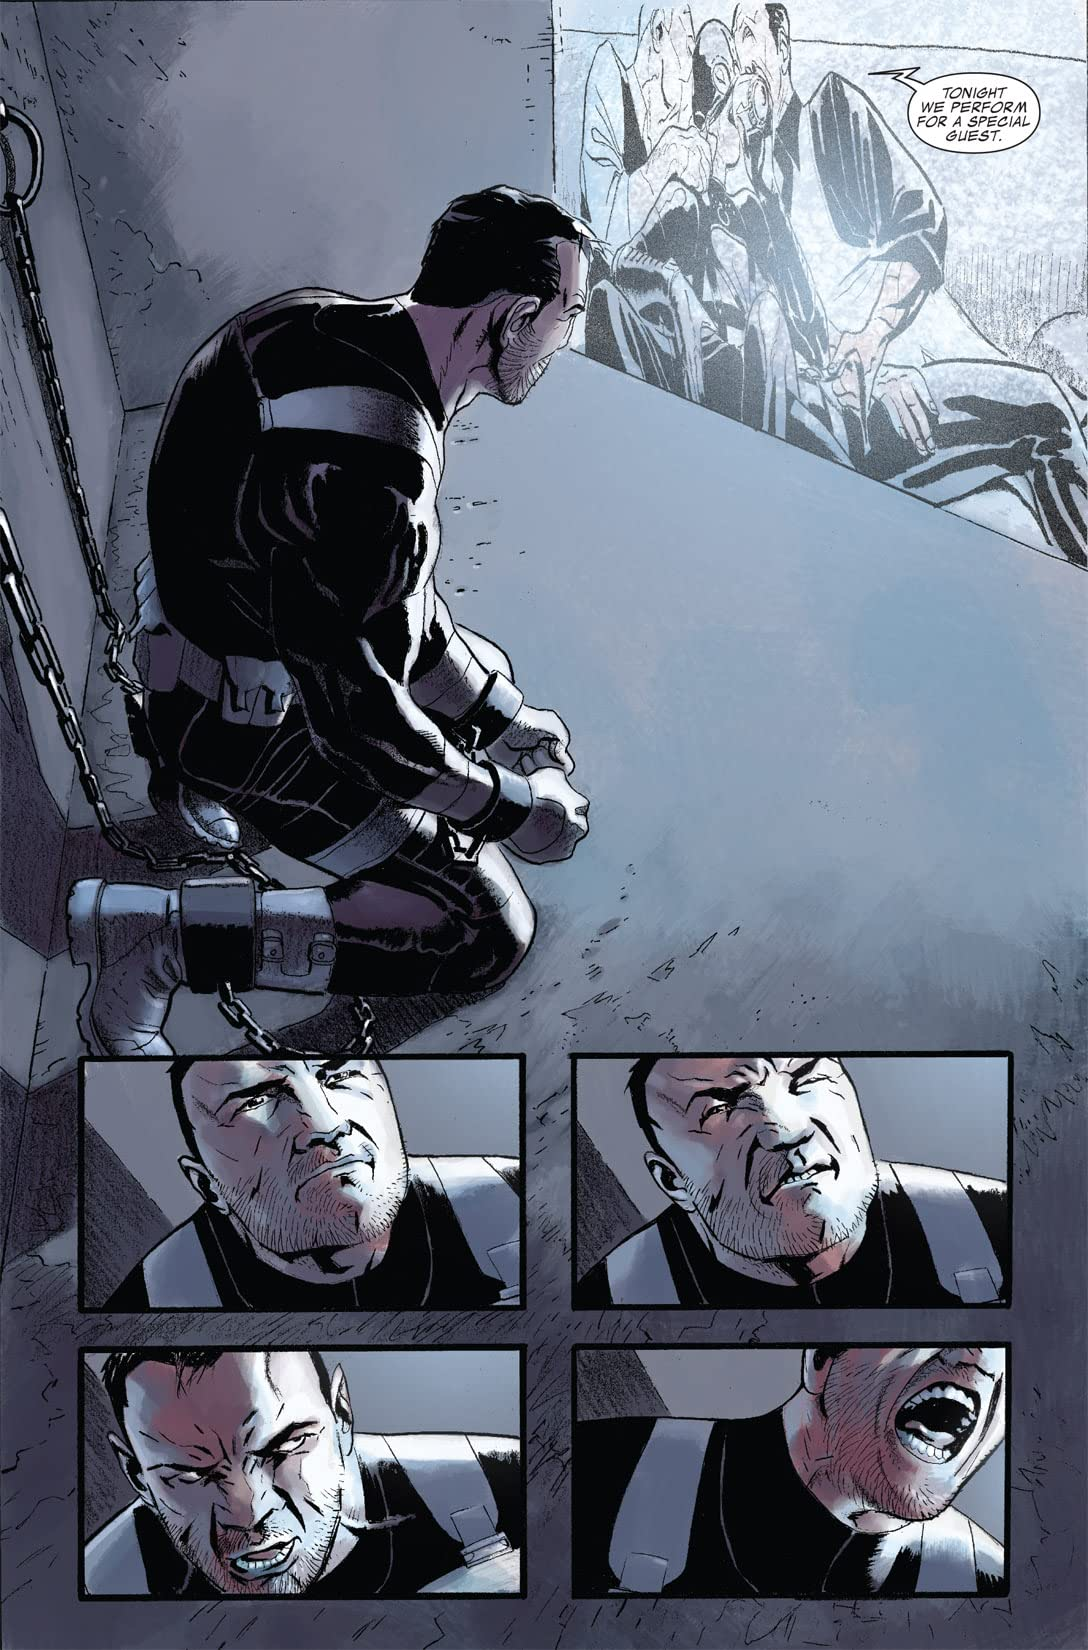 Punisher: In the Blood #4 (of 5)